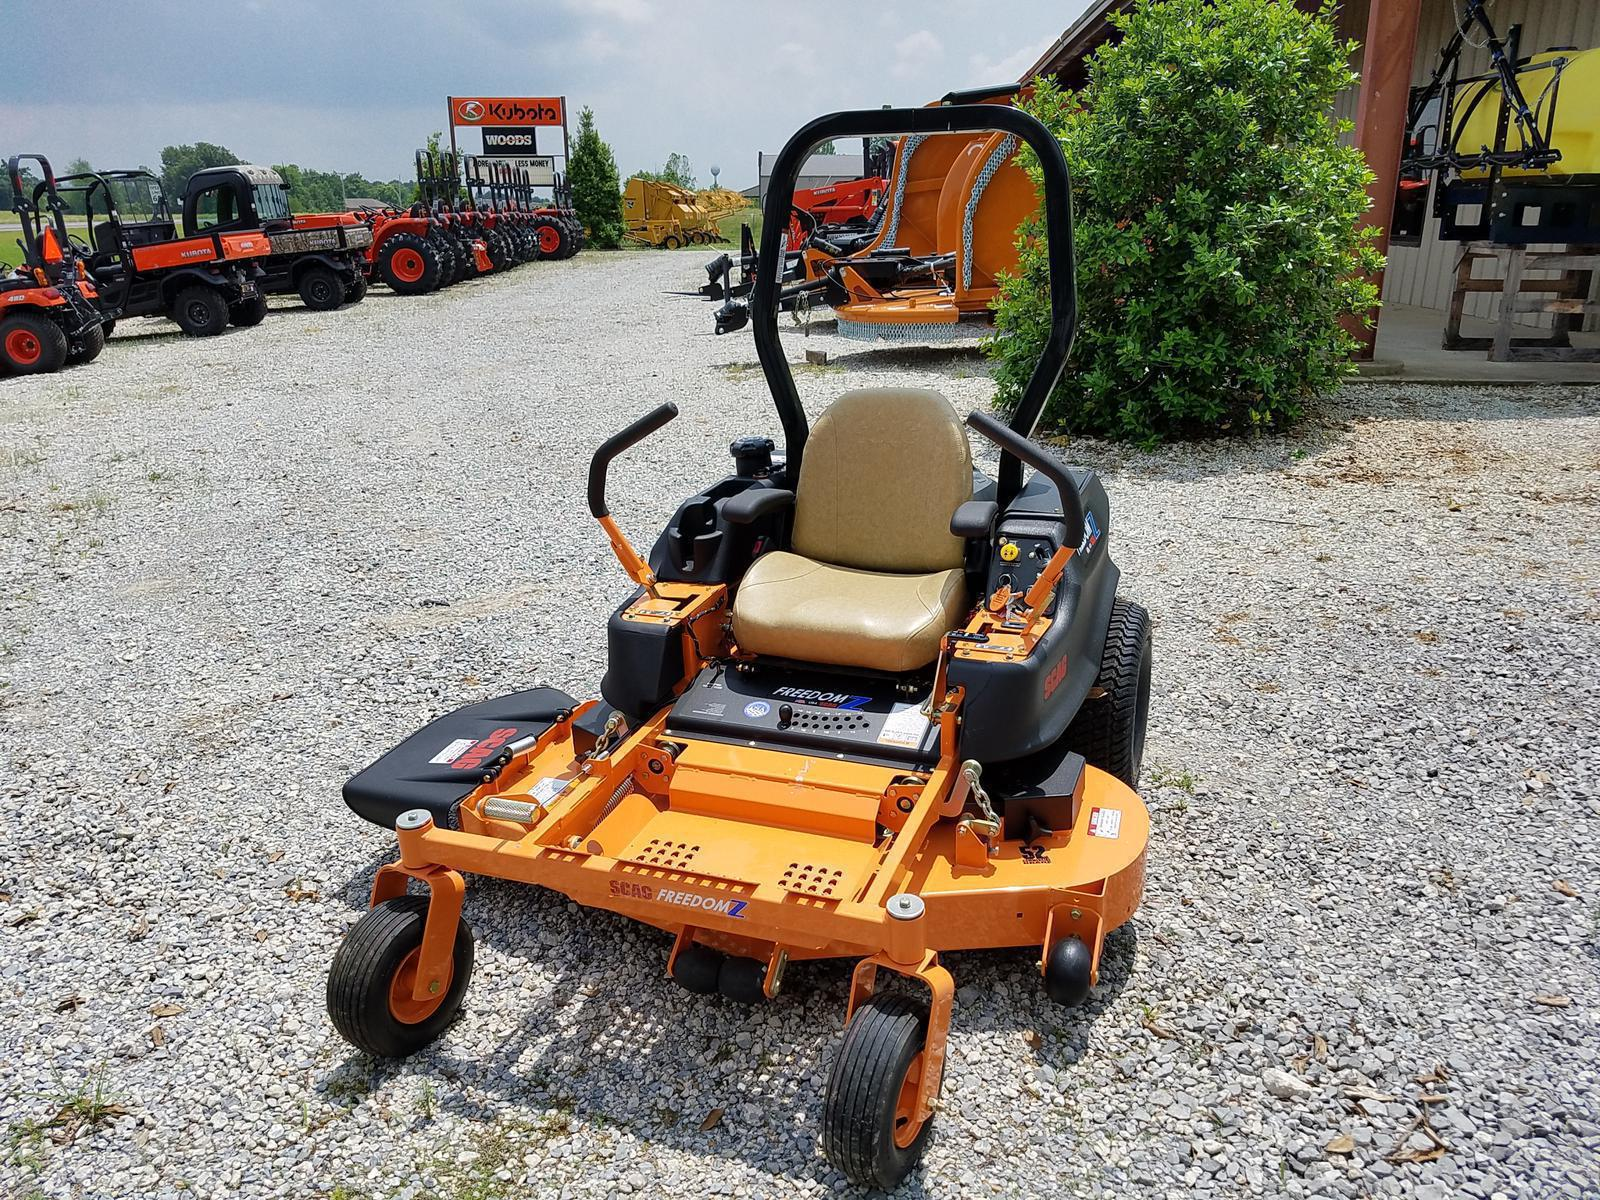 2018 Scag Sfz52 24kt For Sale In Hickory Ky Horizon Lawn And Wiring Harness Tractor 270 856 4355